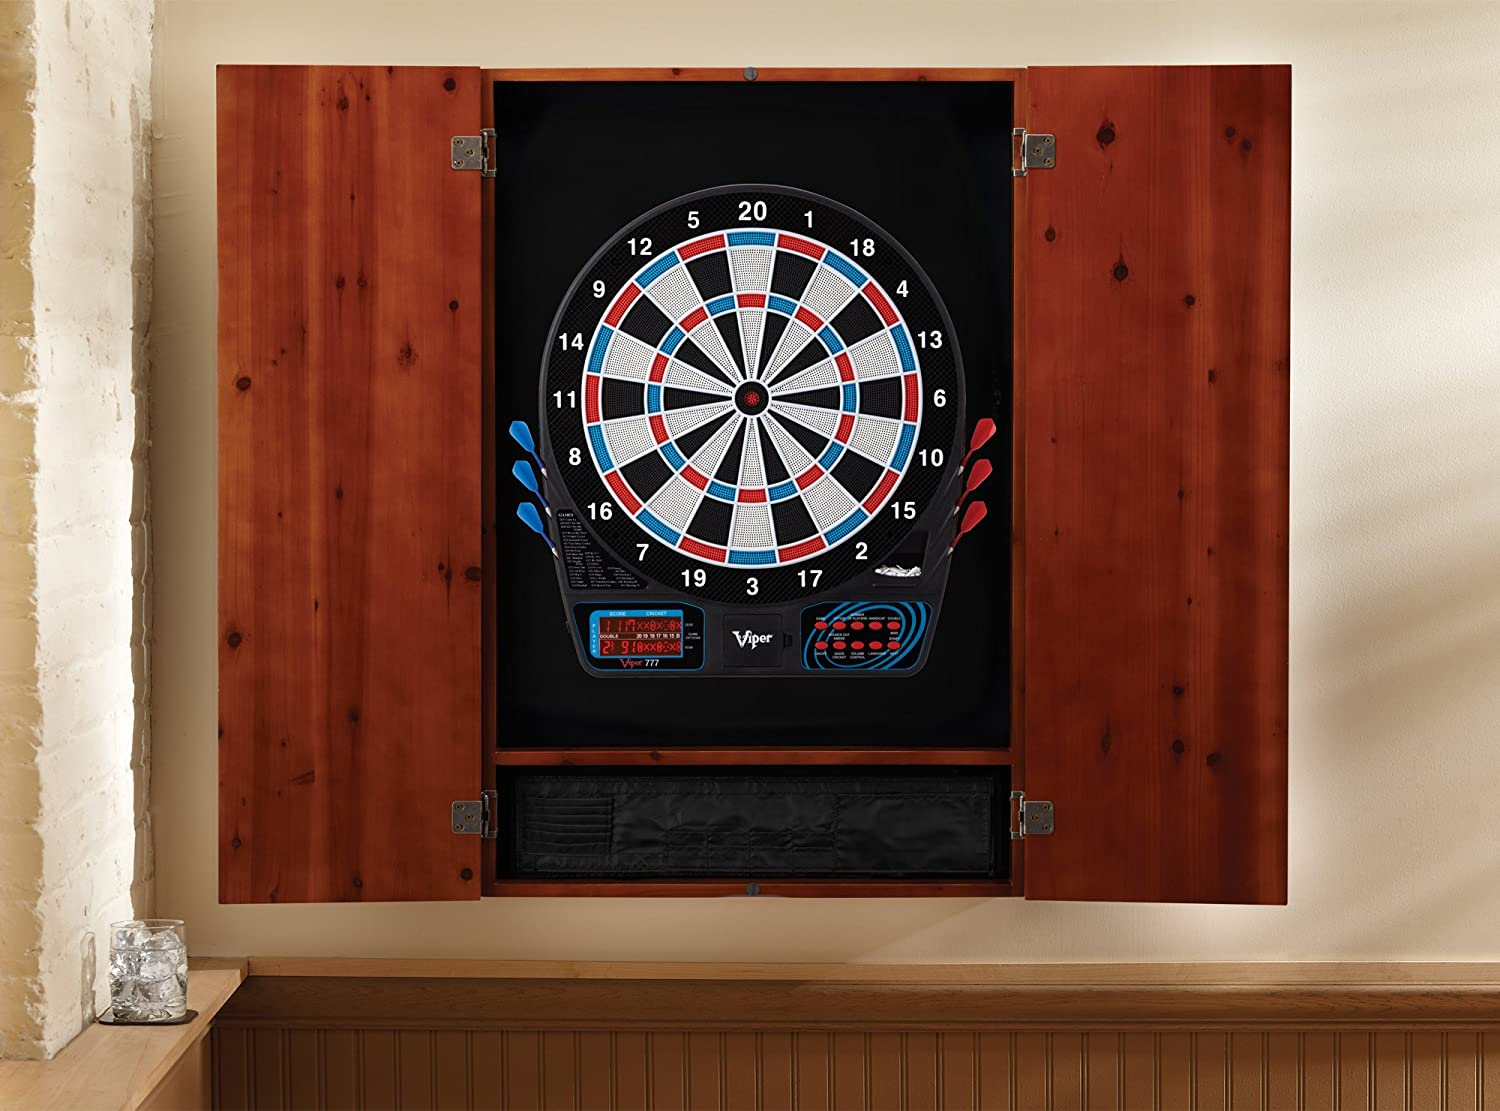 Viper Metropolitan Solid Wood Cabinet /& Electronic Dartboard Ready-to-Play Bundle with Two Sets of Soft-Tip Darts and Integrated Storage in Multiple Stain Options